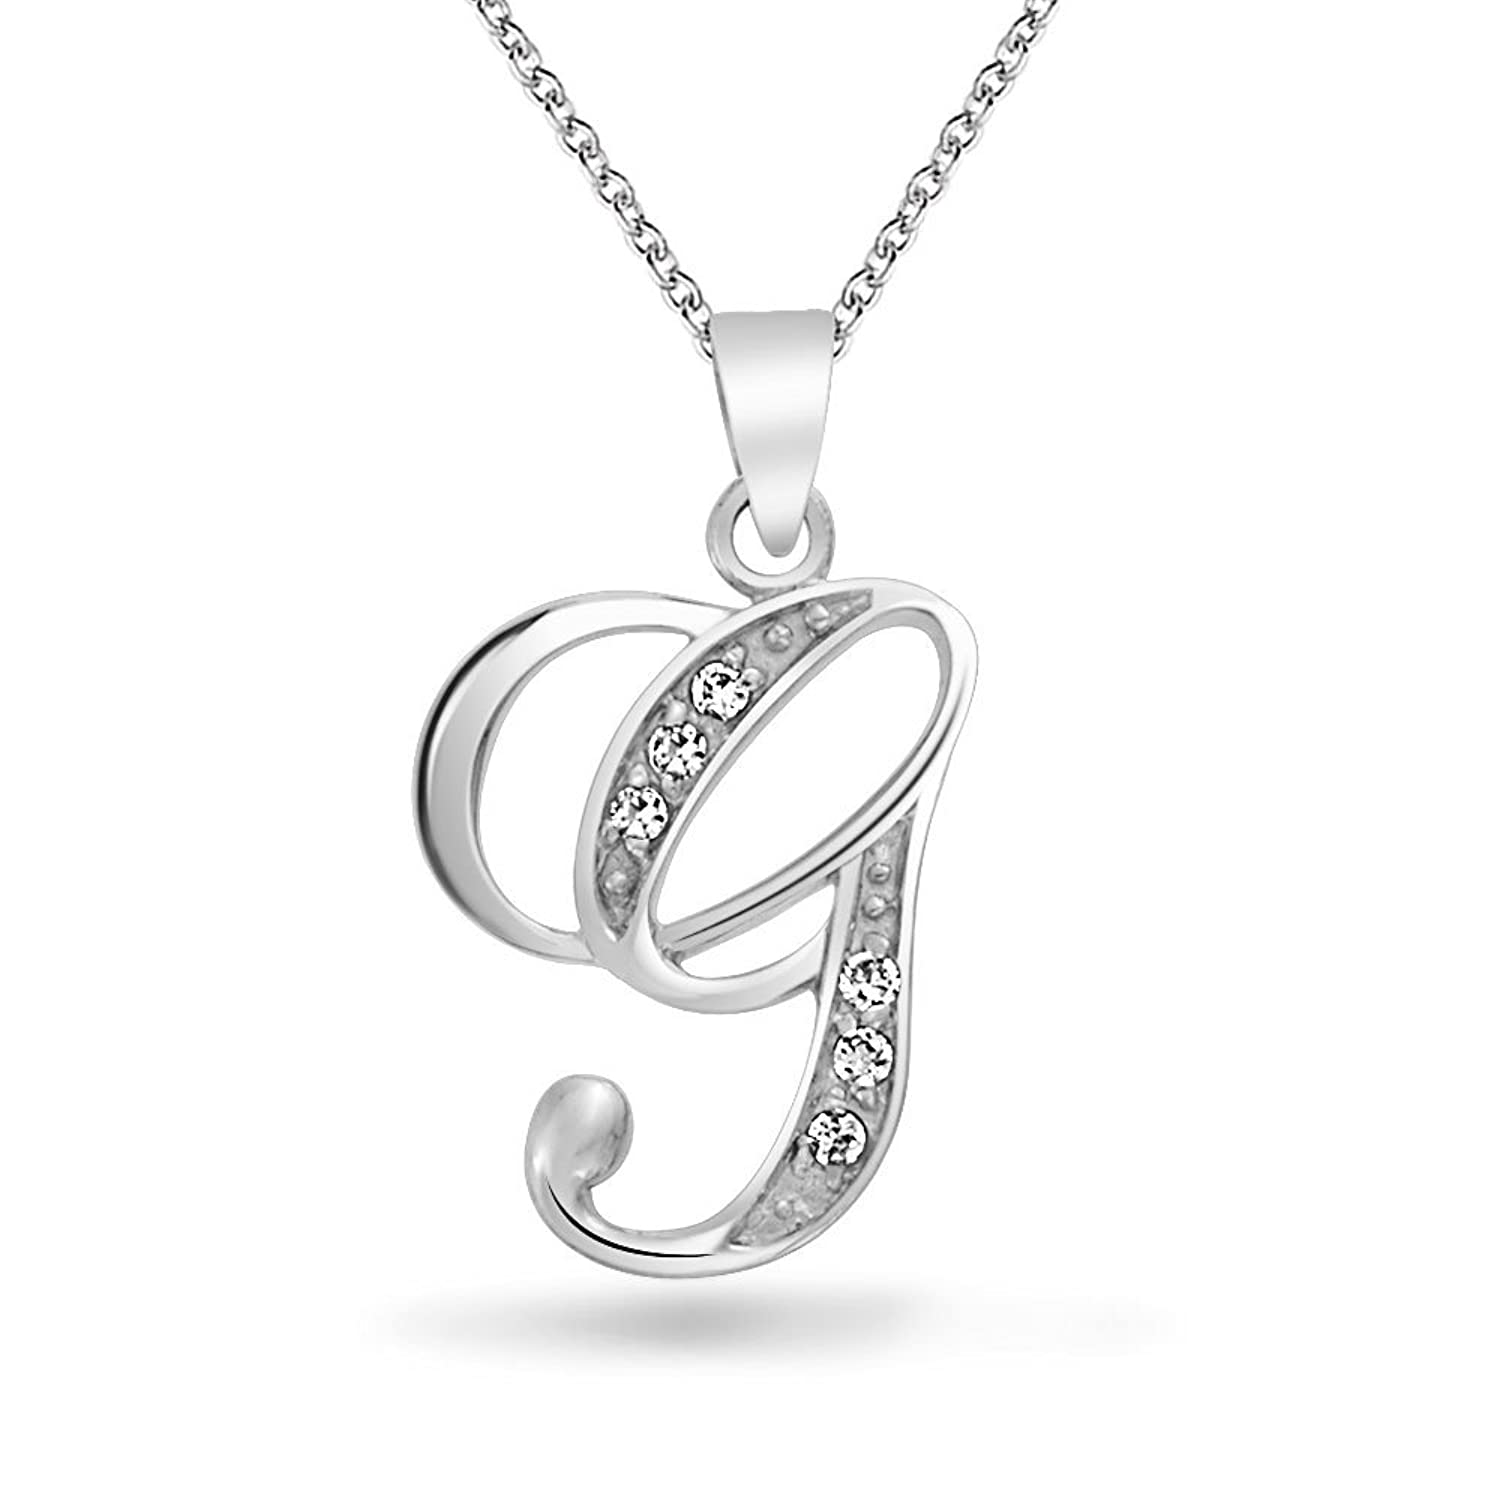 itm name silver tone letter pendant initial necklace monogram s new capital alphabet